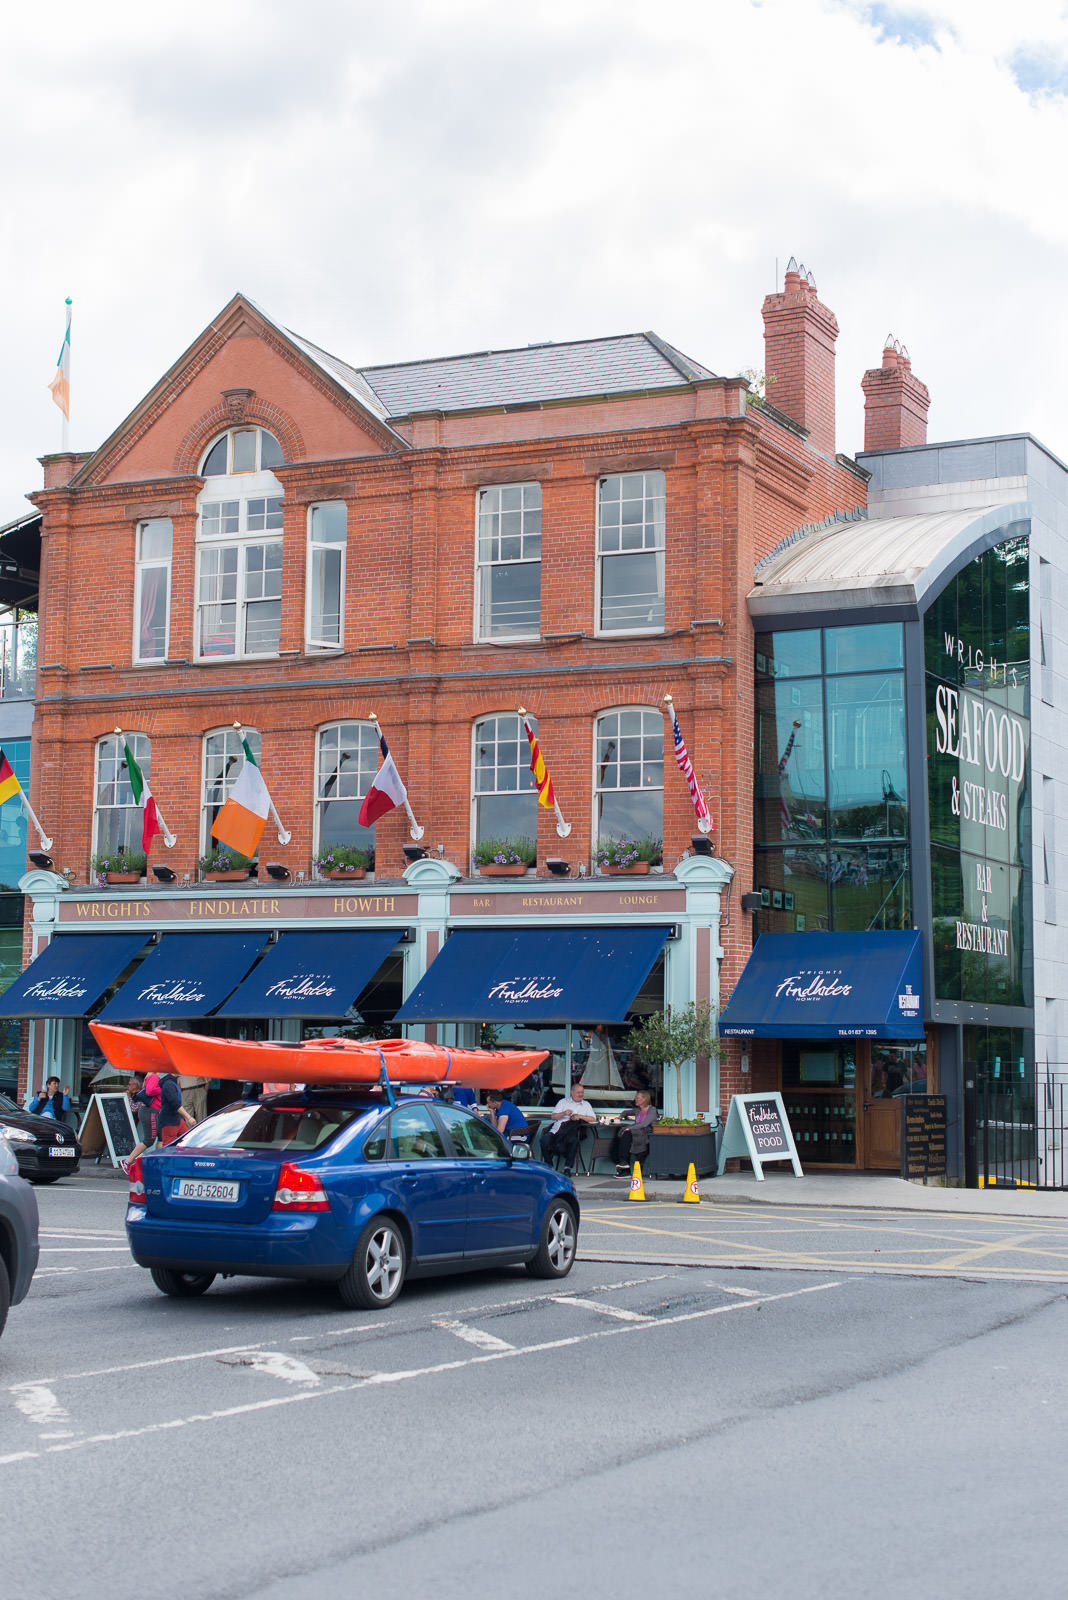 Blog-Mode-And-The-City-Lifestyle-Long-Week-End-Irlande-Howth-20